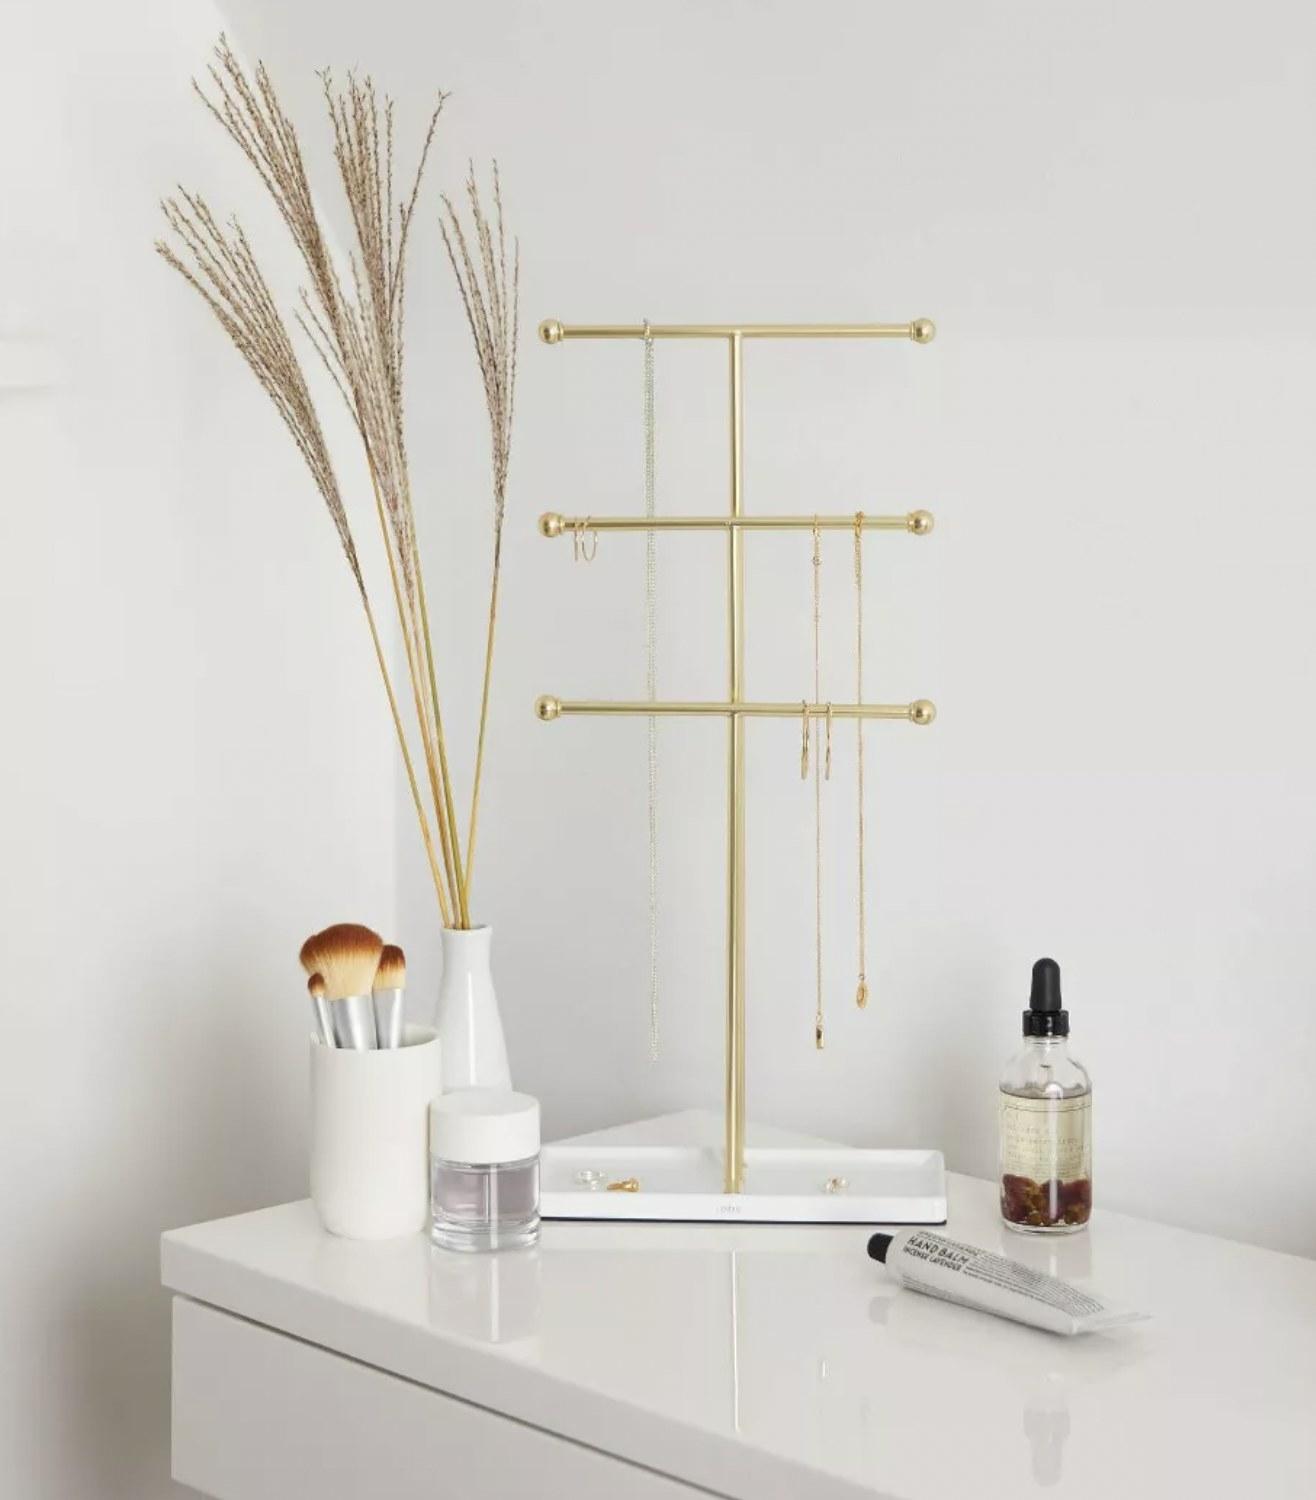 a brass jewelry stand holding necklaces, resting on a dresser